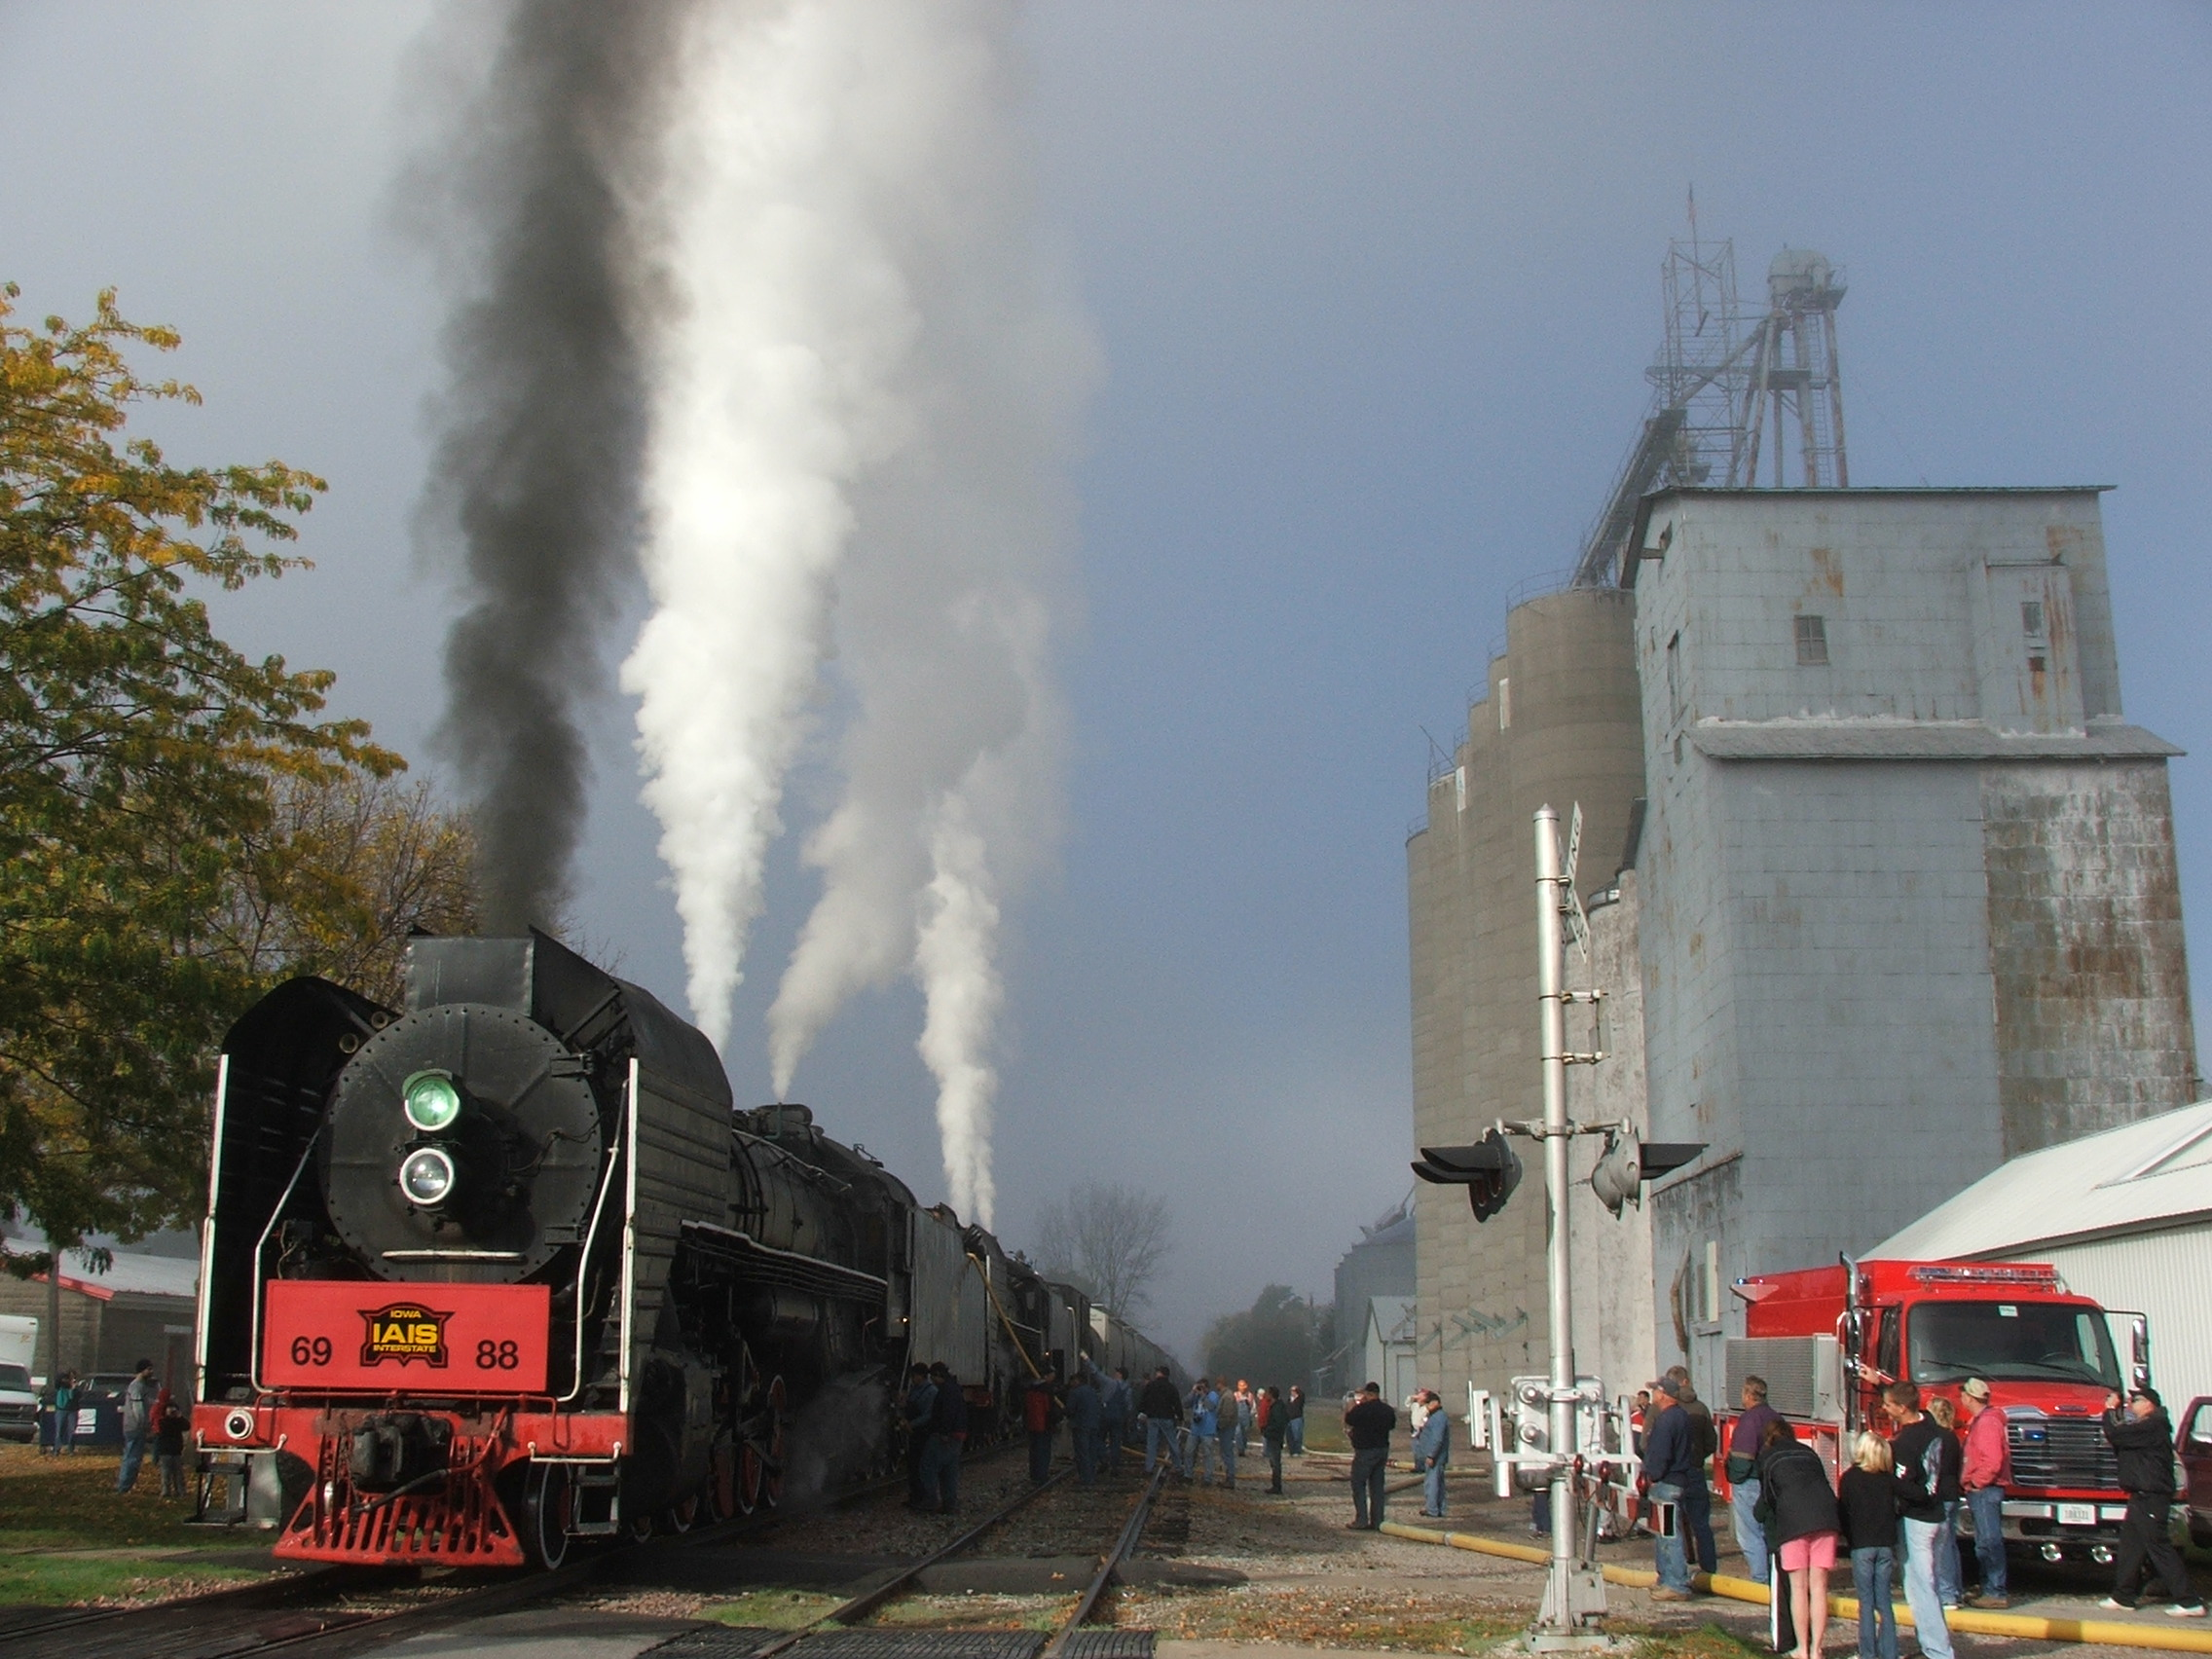 IAIS 6988 and 7081 take on water as the throngs of people gather, and the sun finally breaks through!